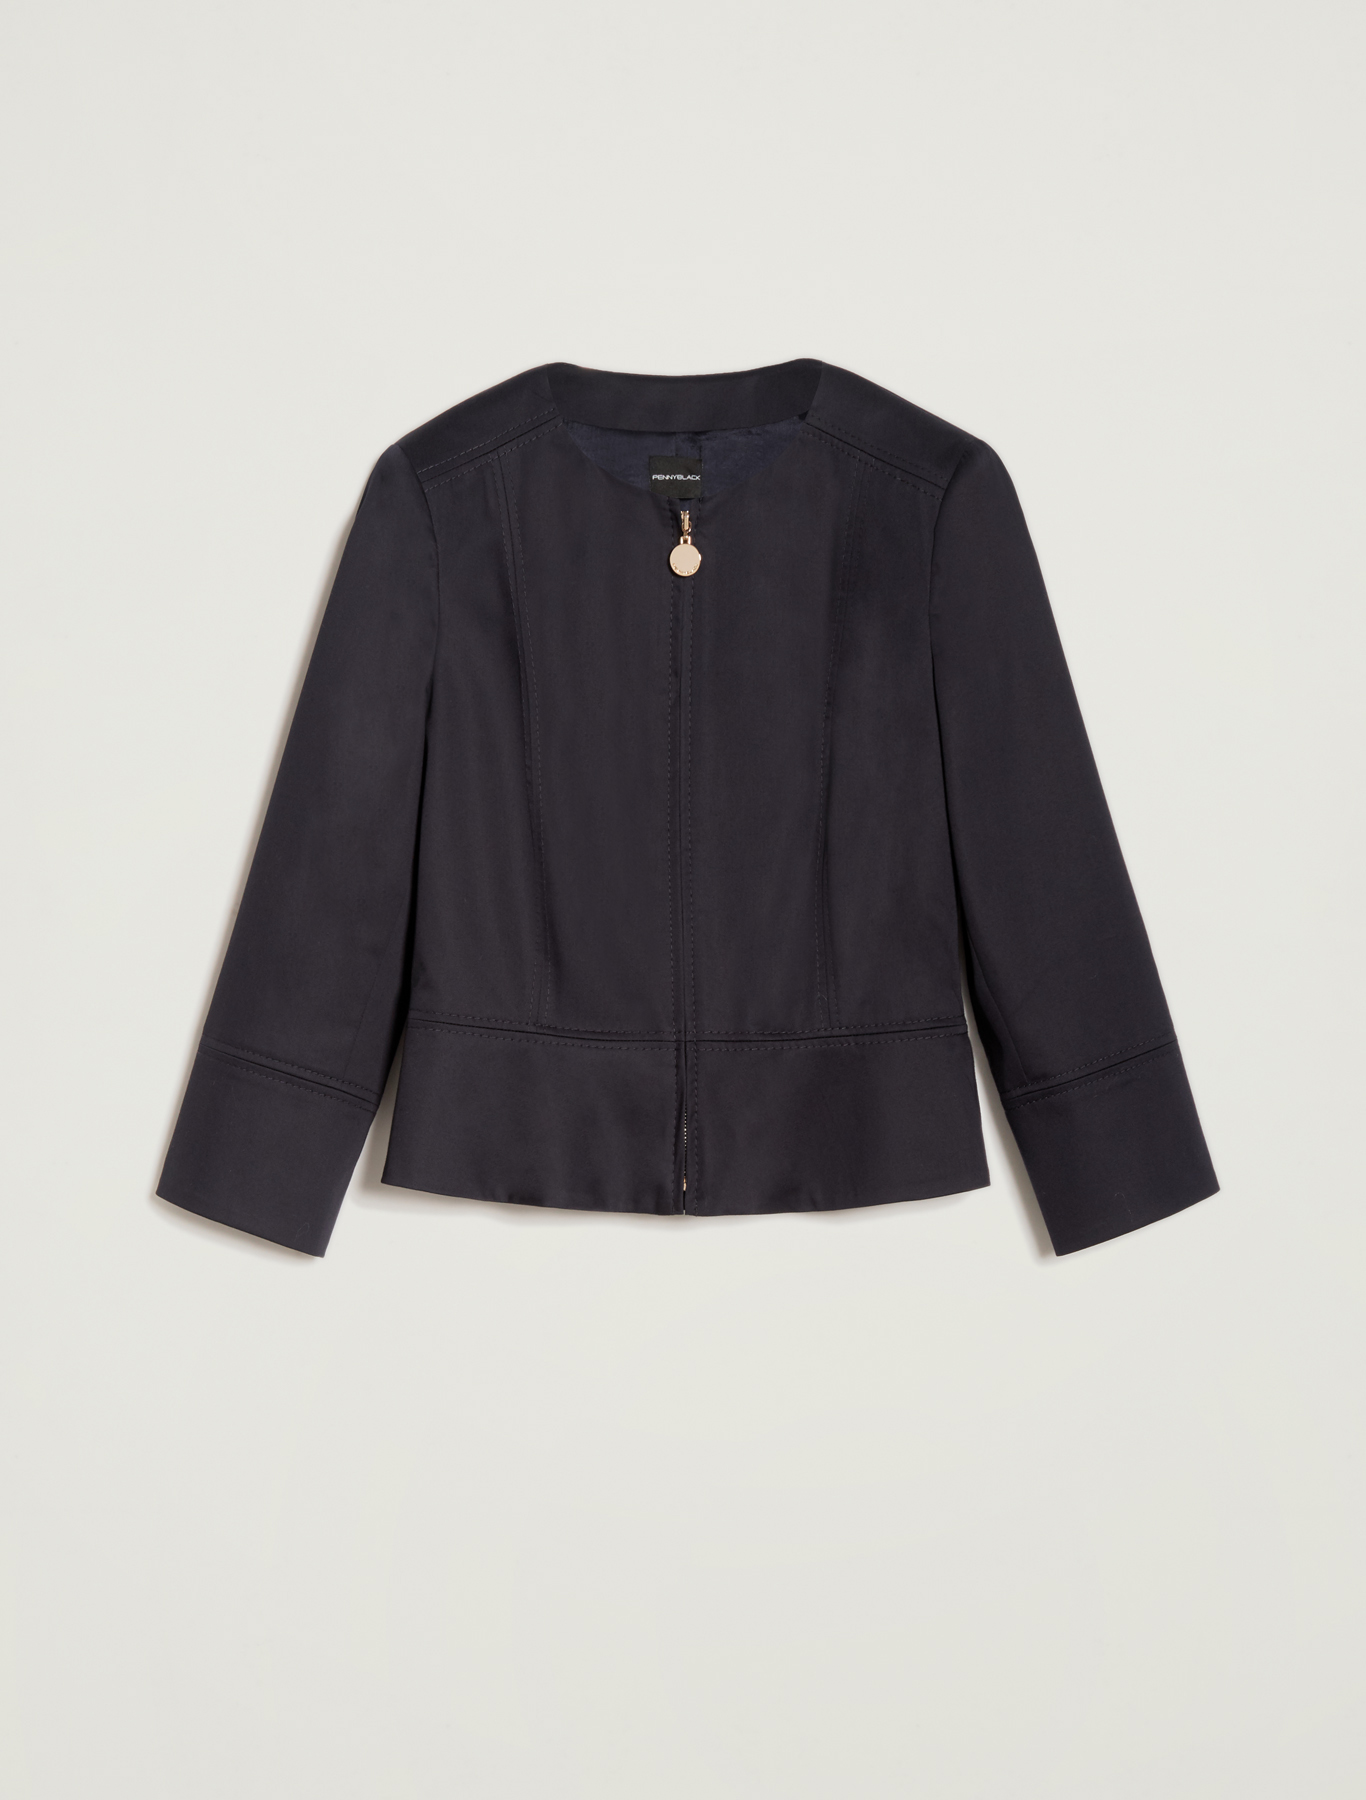 Cotton satin jacket - navy blue - pennyblack